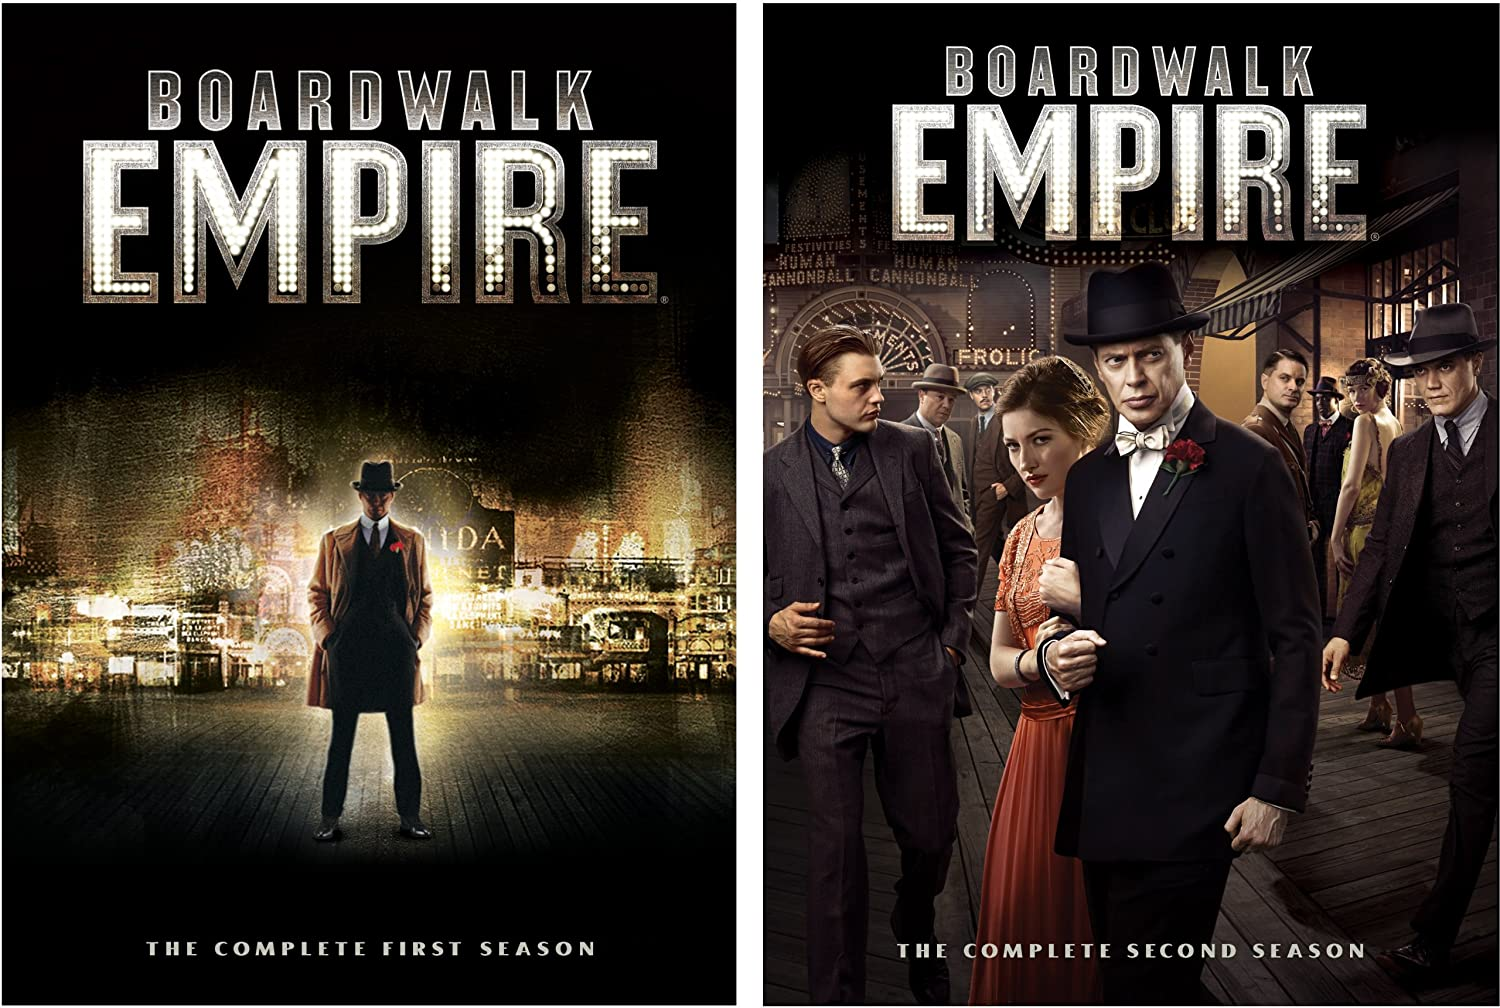 Boardwalk empire season 1 2 complete 480p ilpruny